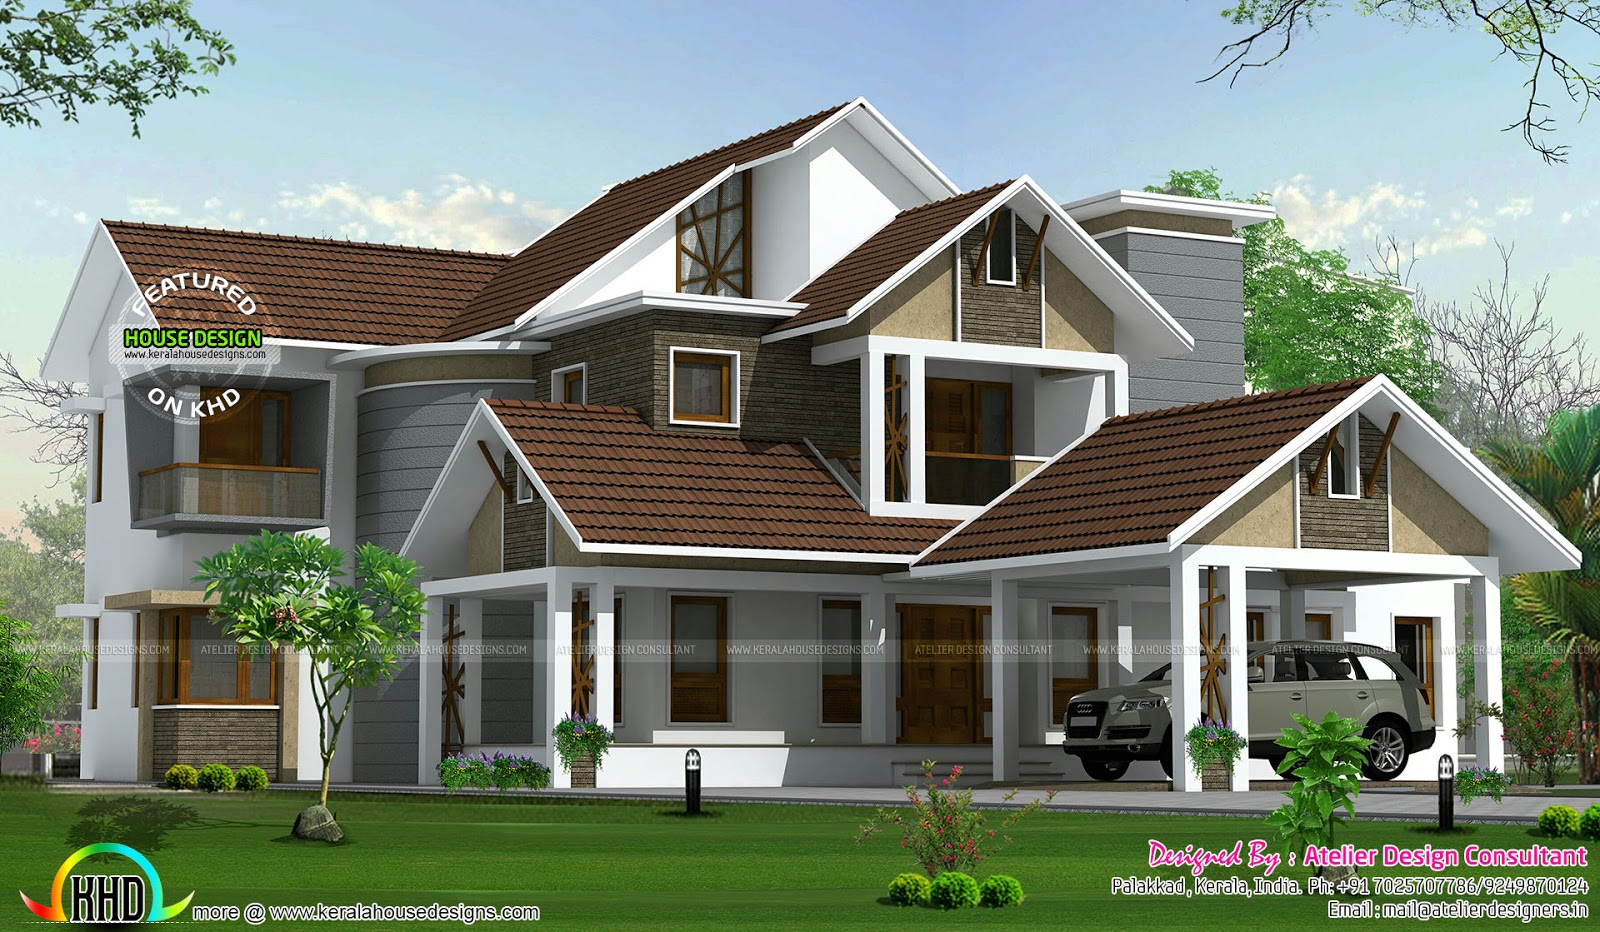 Beautiful Slope Roof Home Kerala Home Design And Floor Plans